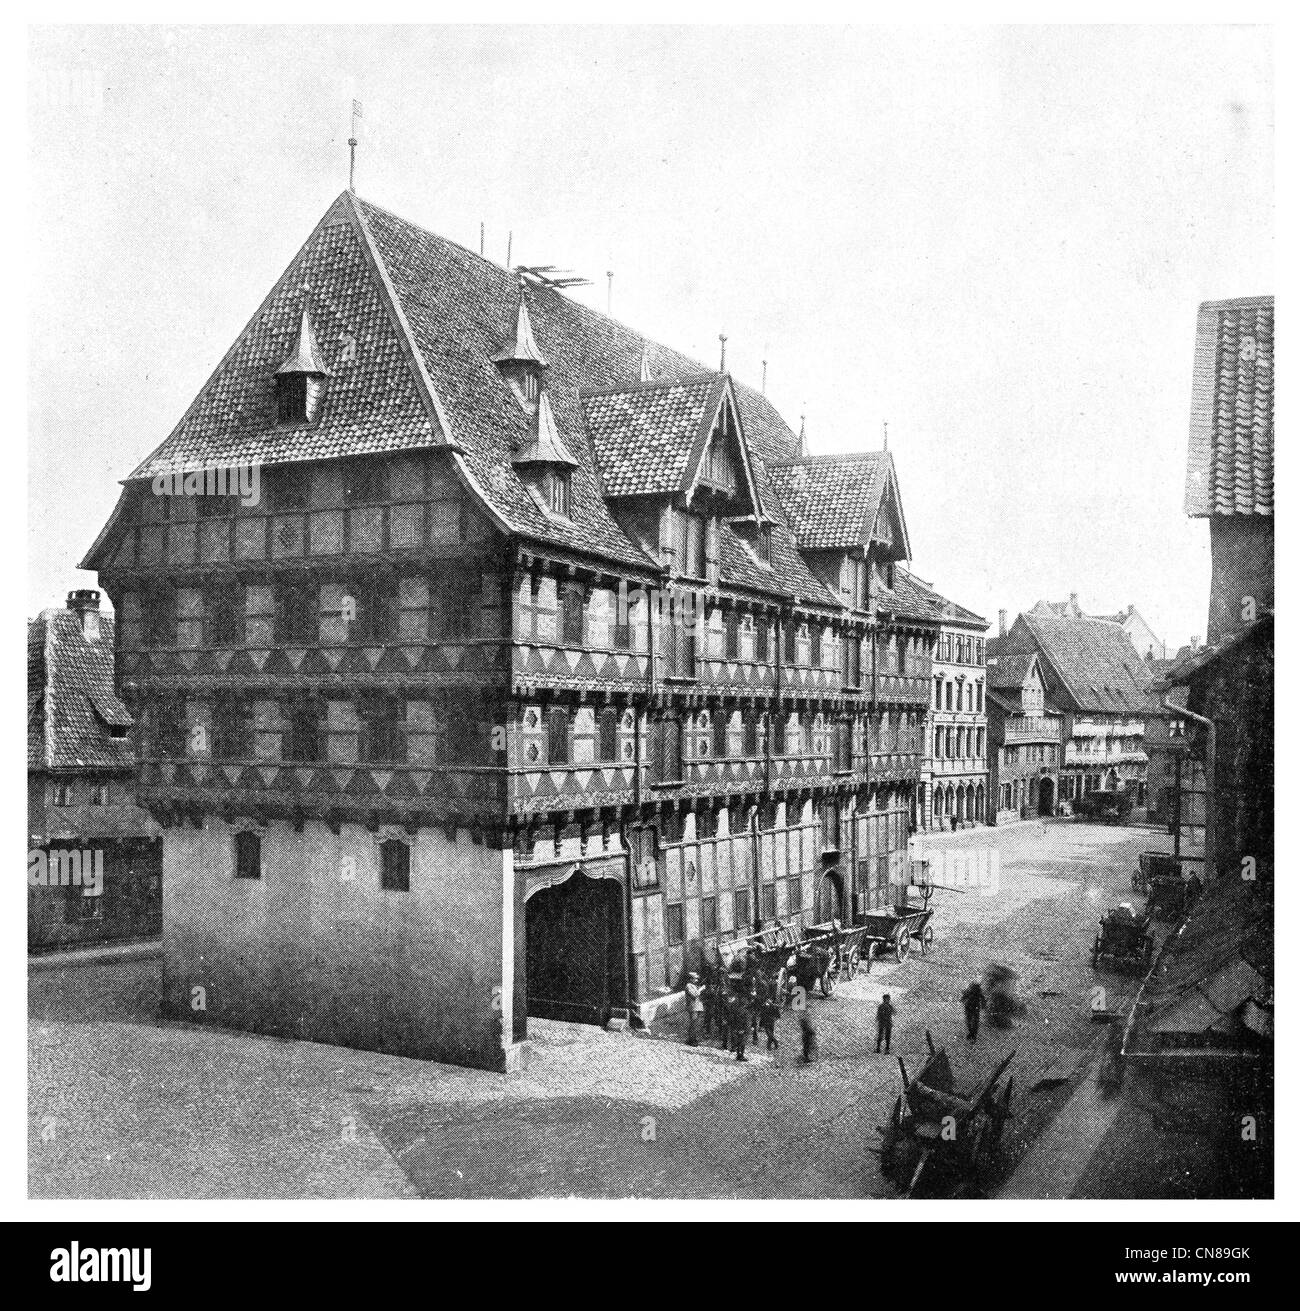 First published 1915  Market Square in Braunschweig Brunswick Germany weighing and storage house - Stock Image